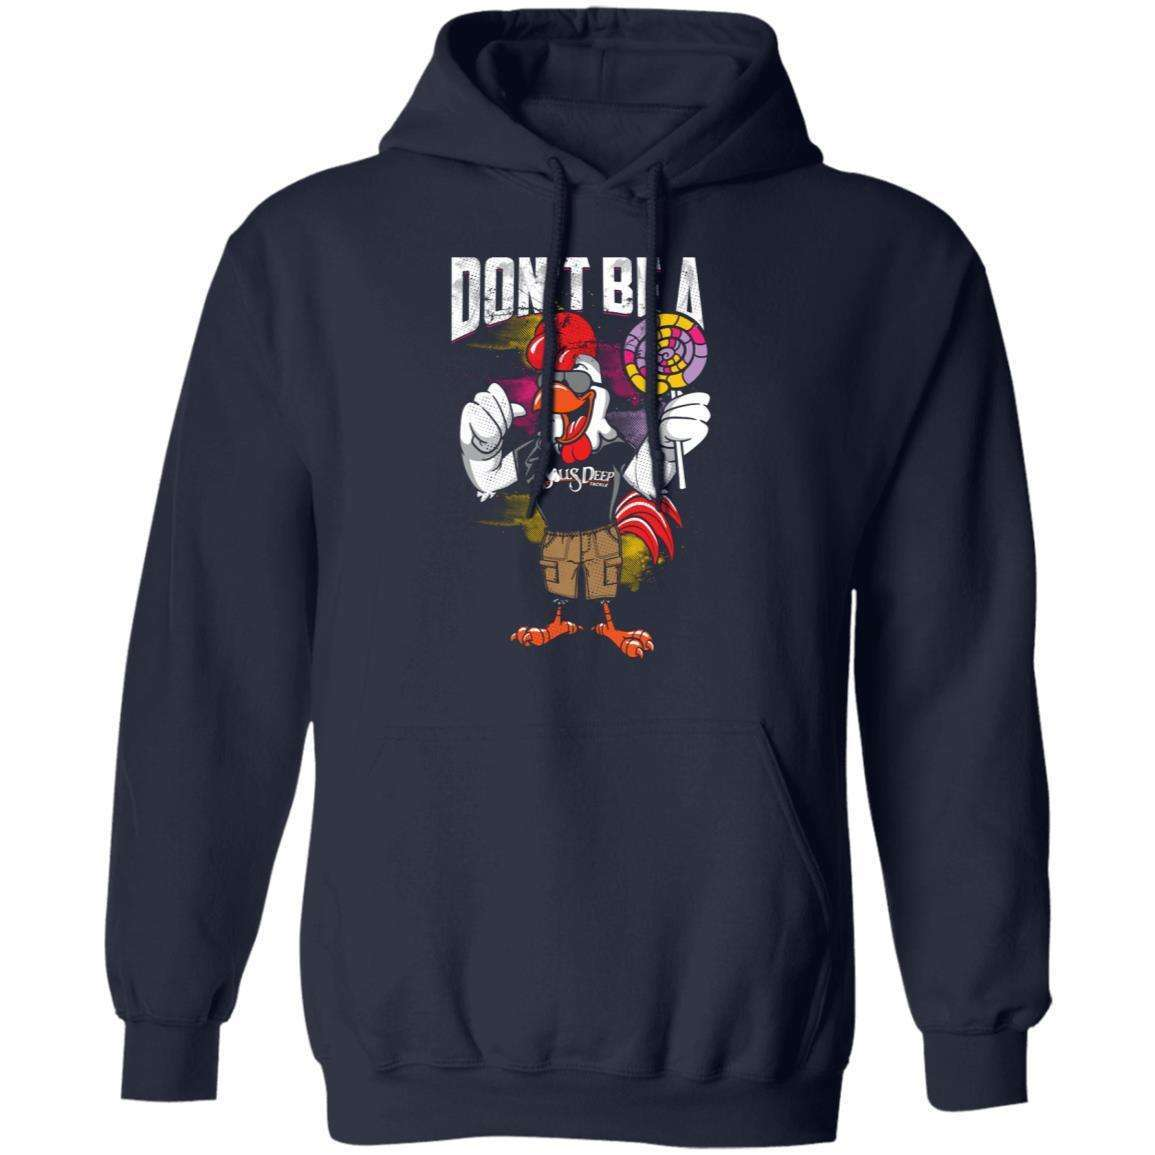 Don't Be A Cock Sucker 2 Hoodie